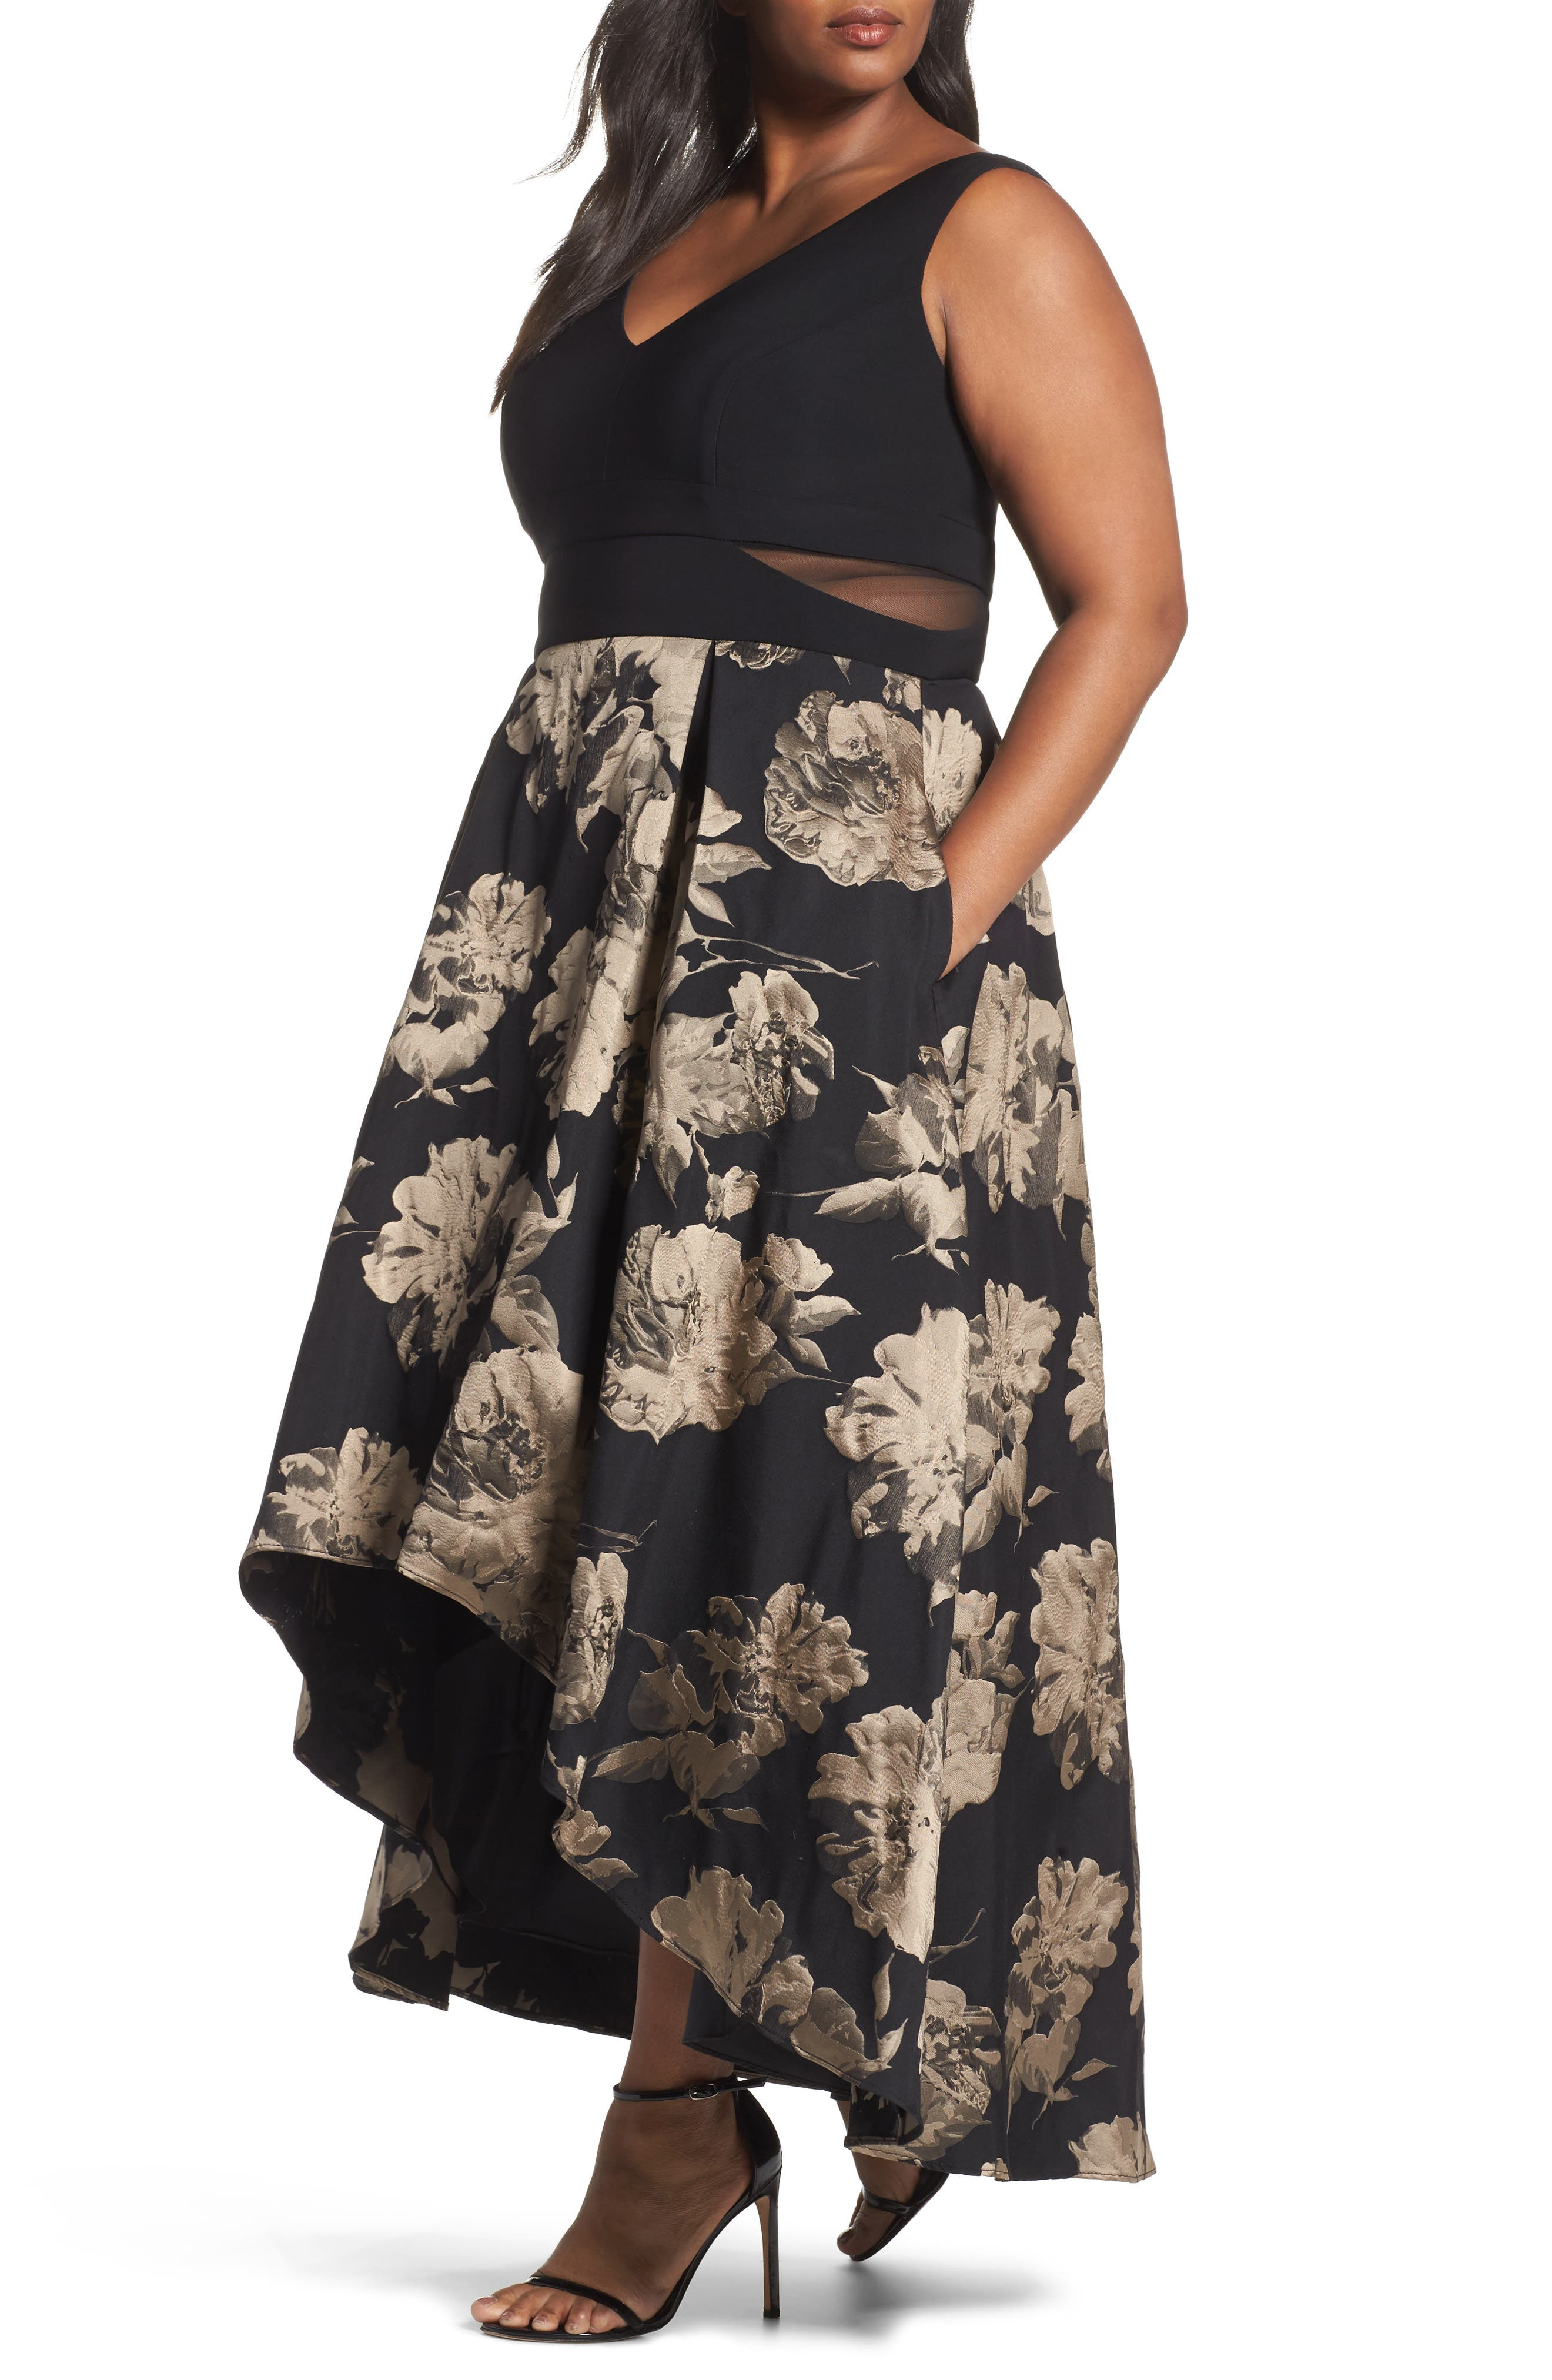 Xscape Mesh Waist High/Low Brocade Dress (Plus Size)